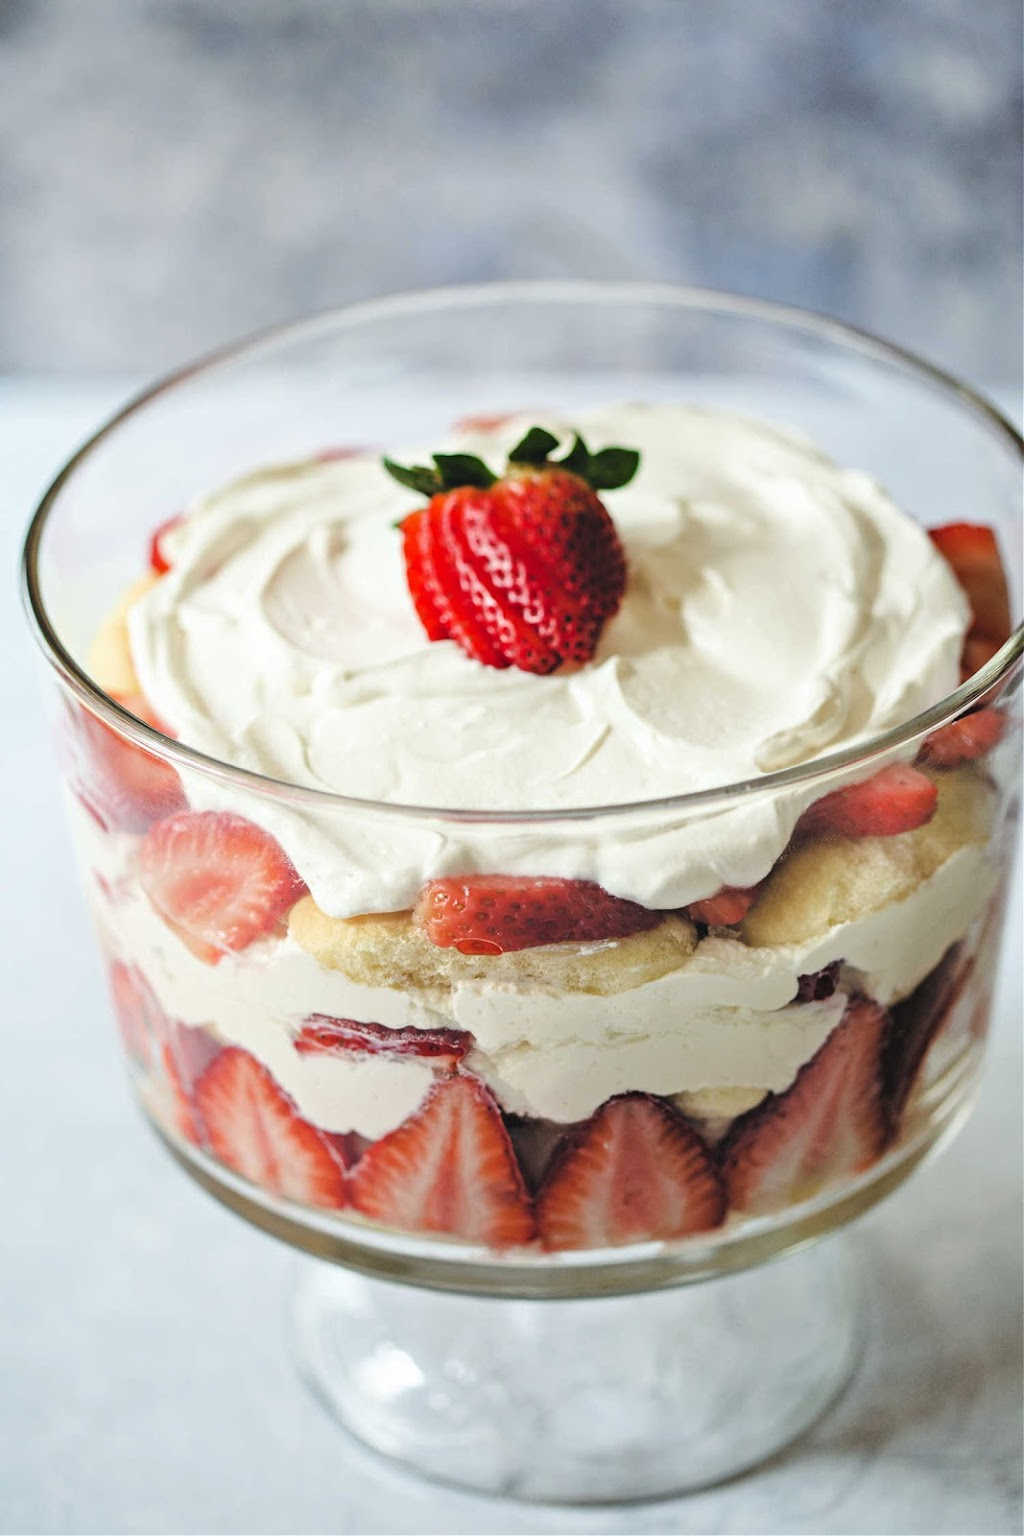 strawberry trifle with whipped cream and strawberry garnish on top in a glass trifle bowl.